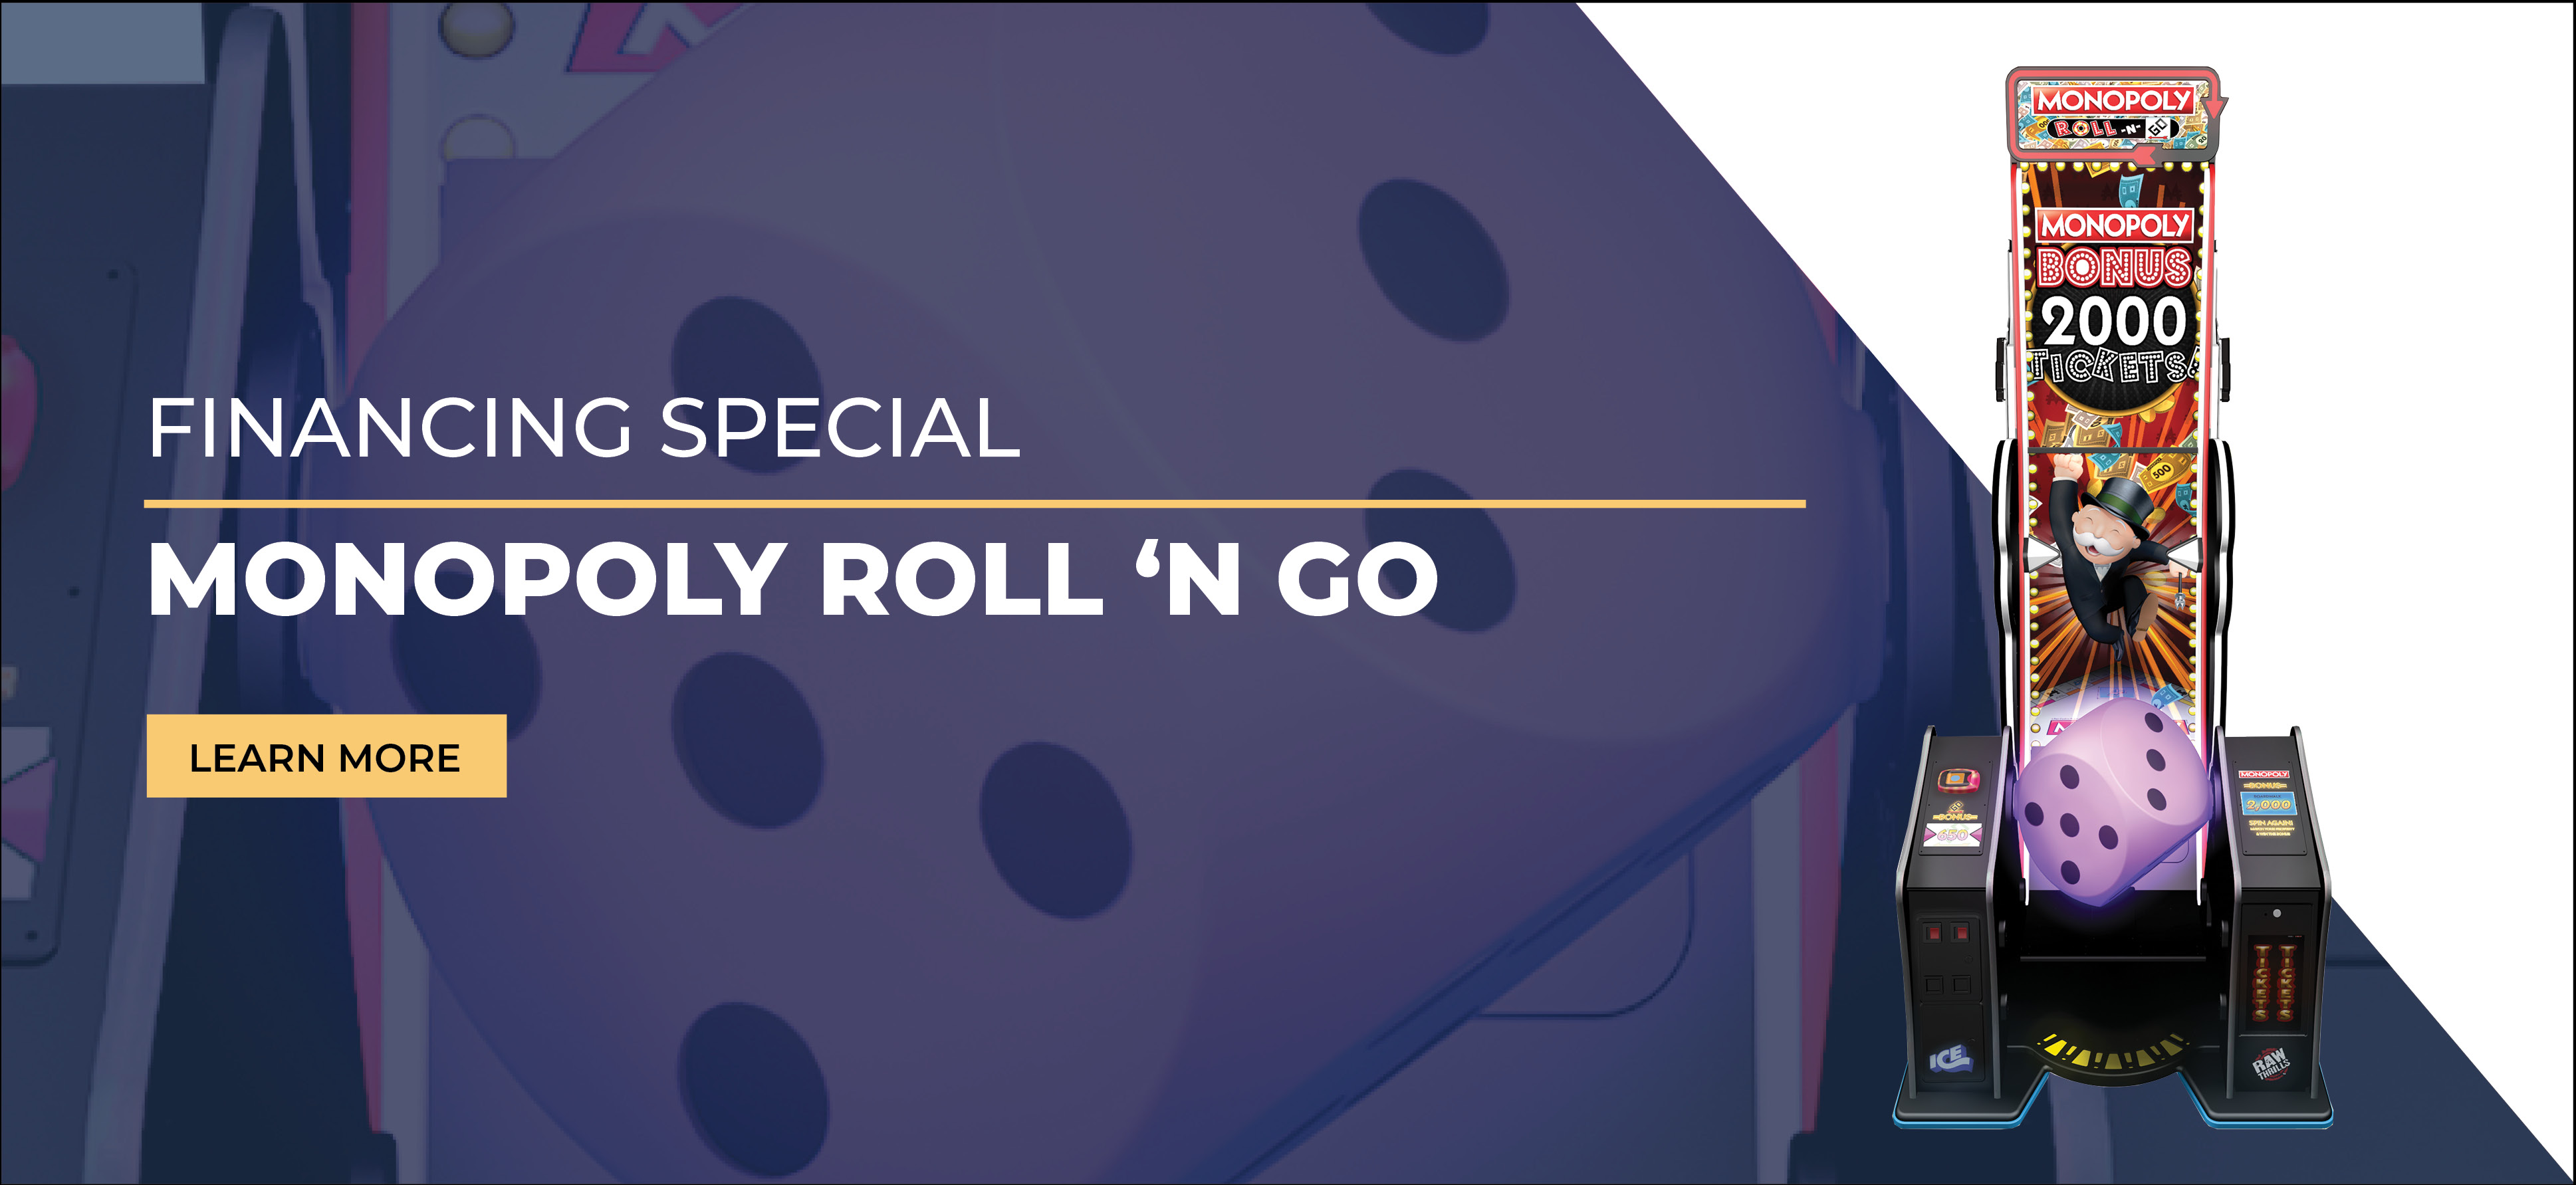 Monopoly Roll 'N Go Financing Special